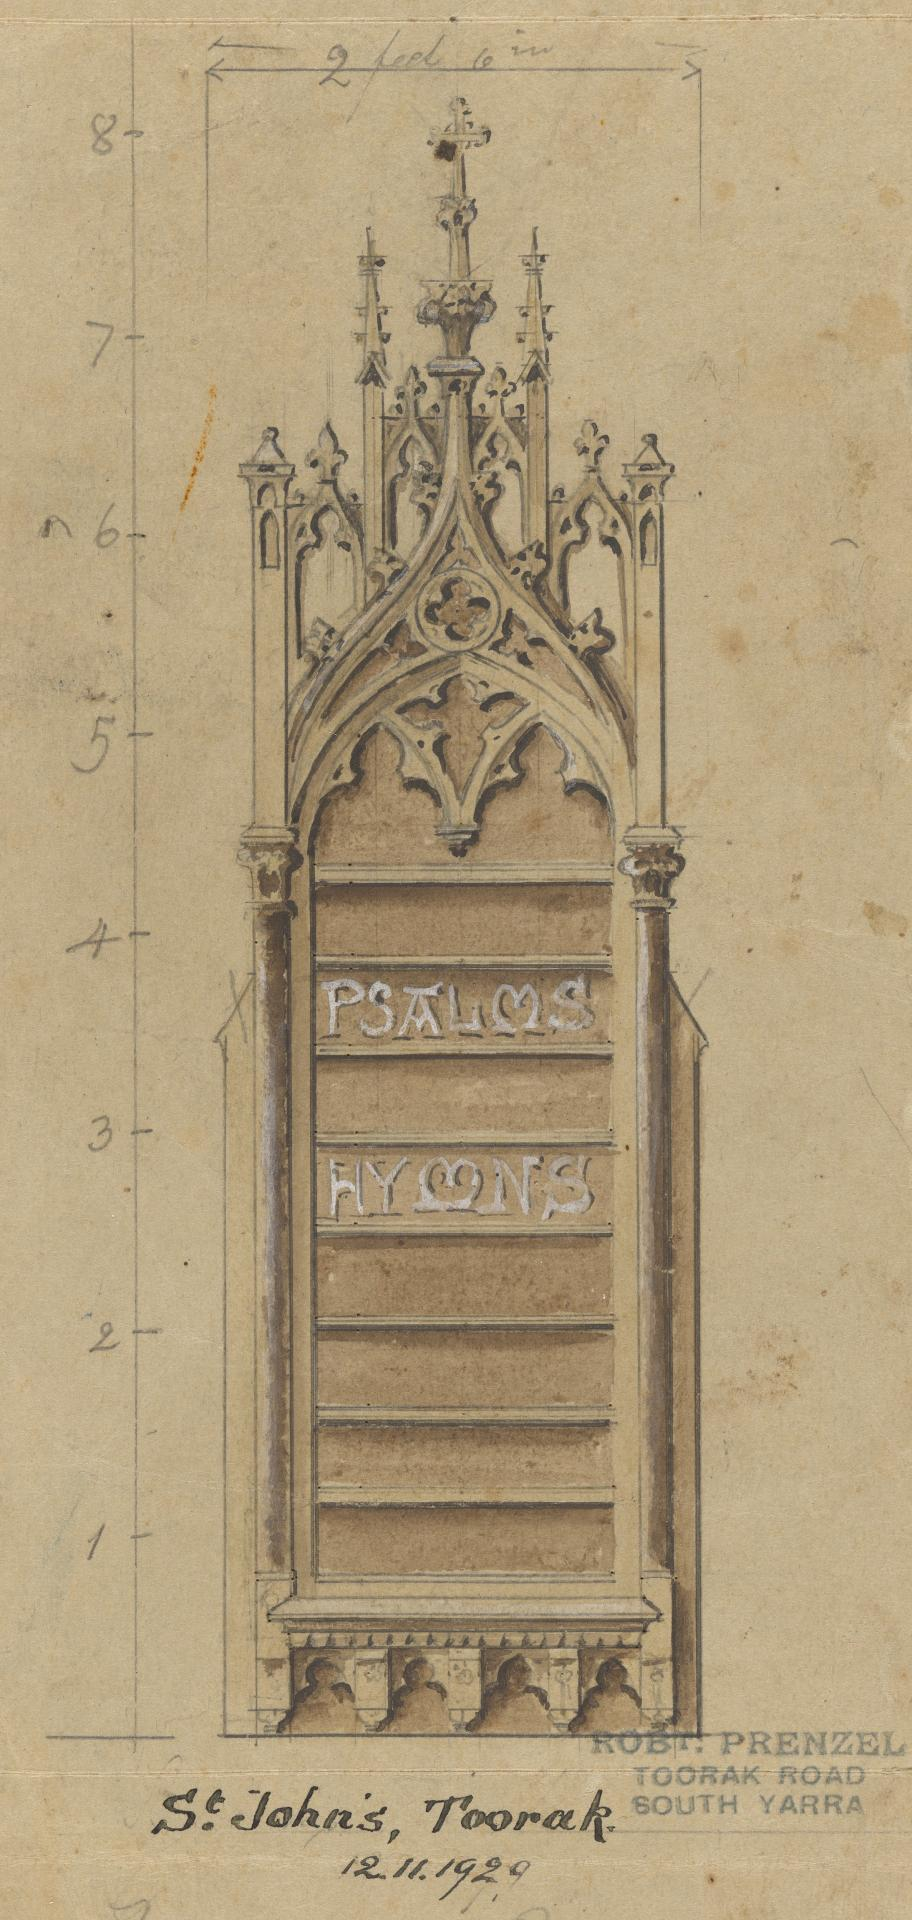 Design for a hymn board for St John's Church of England, Toorak